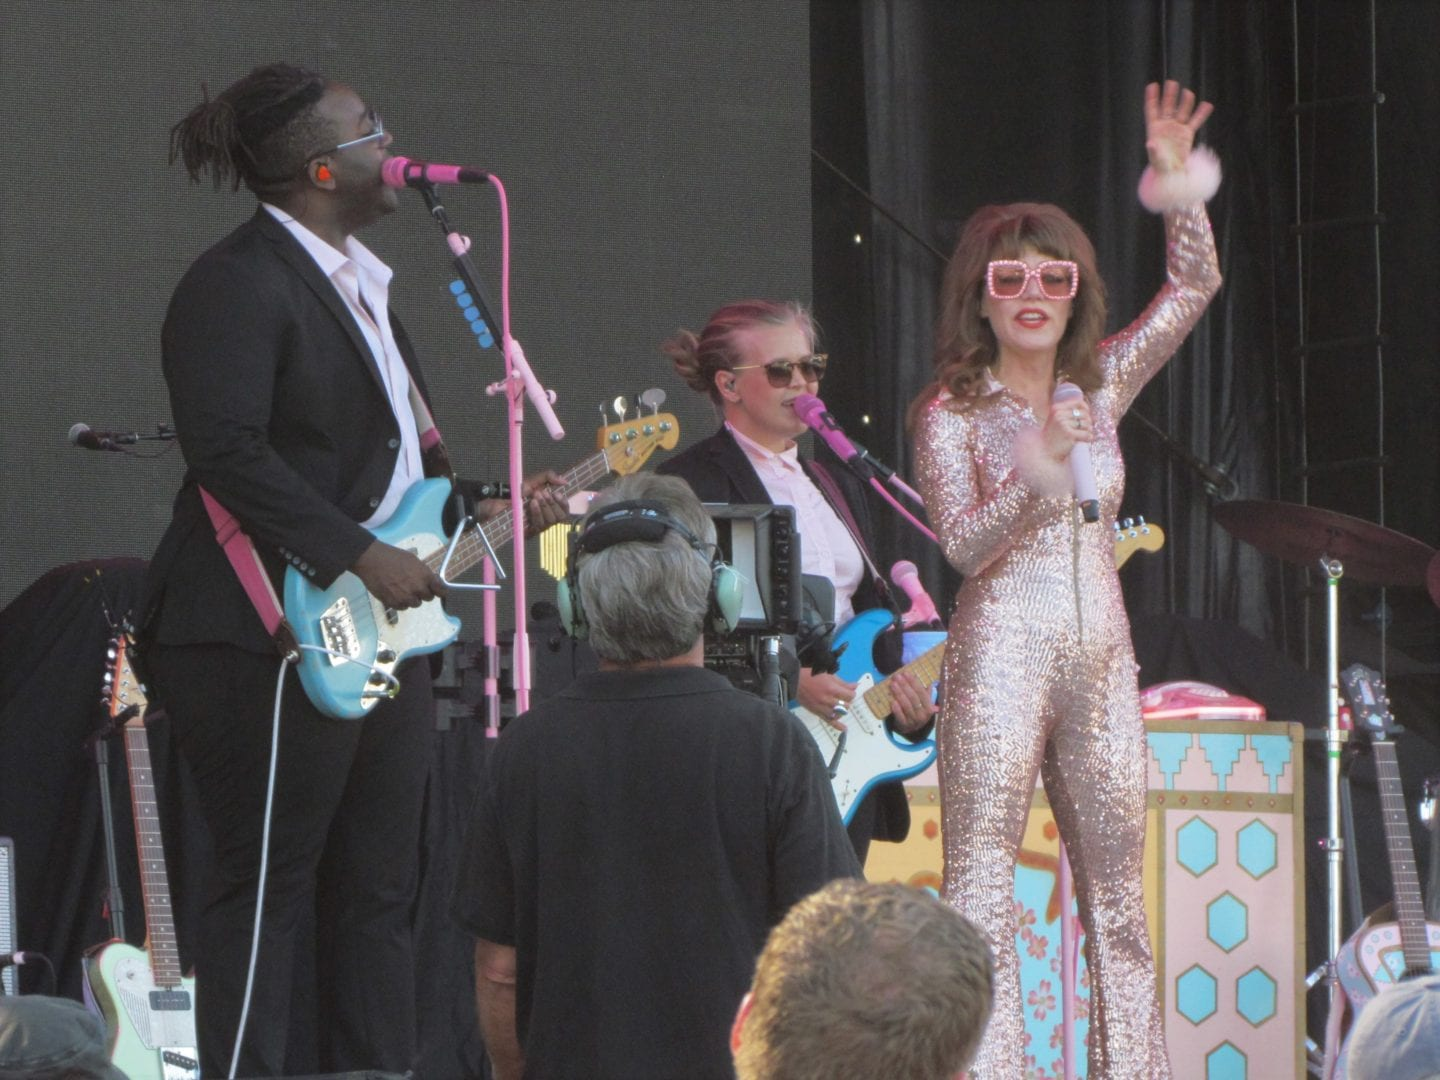 Jenny Lewis performing on stage